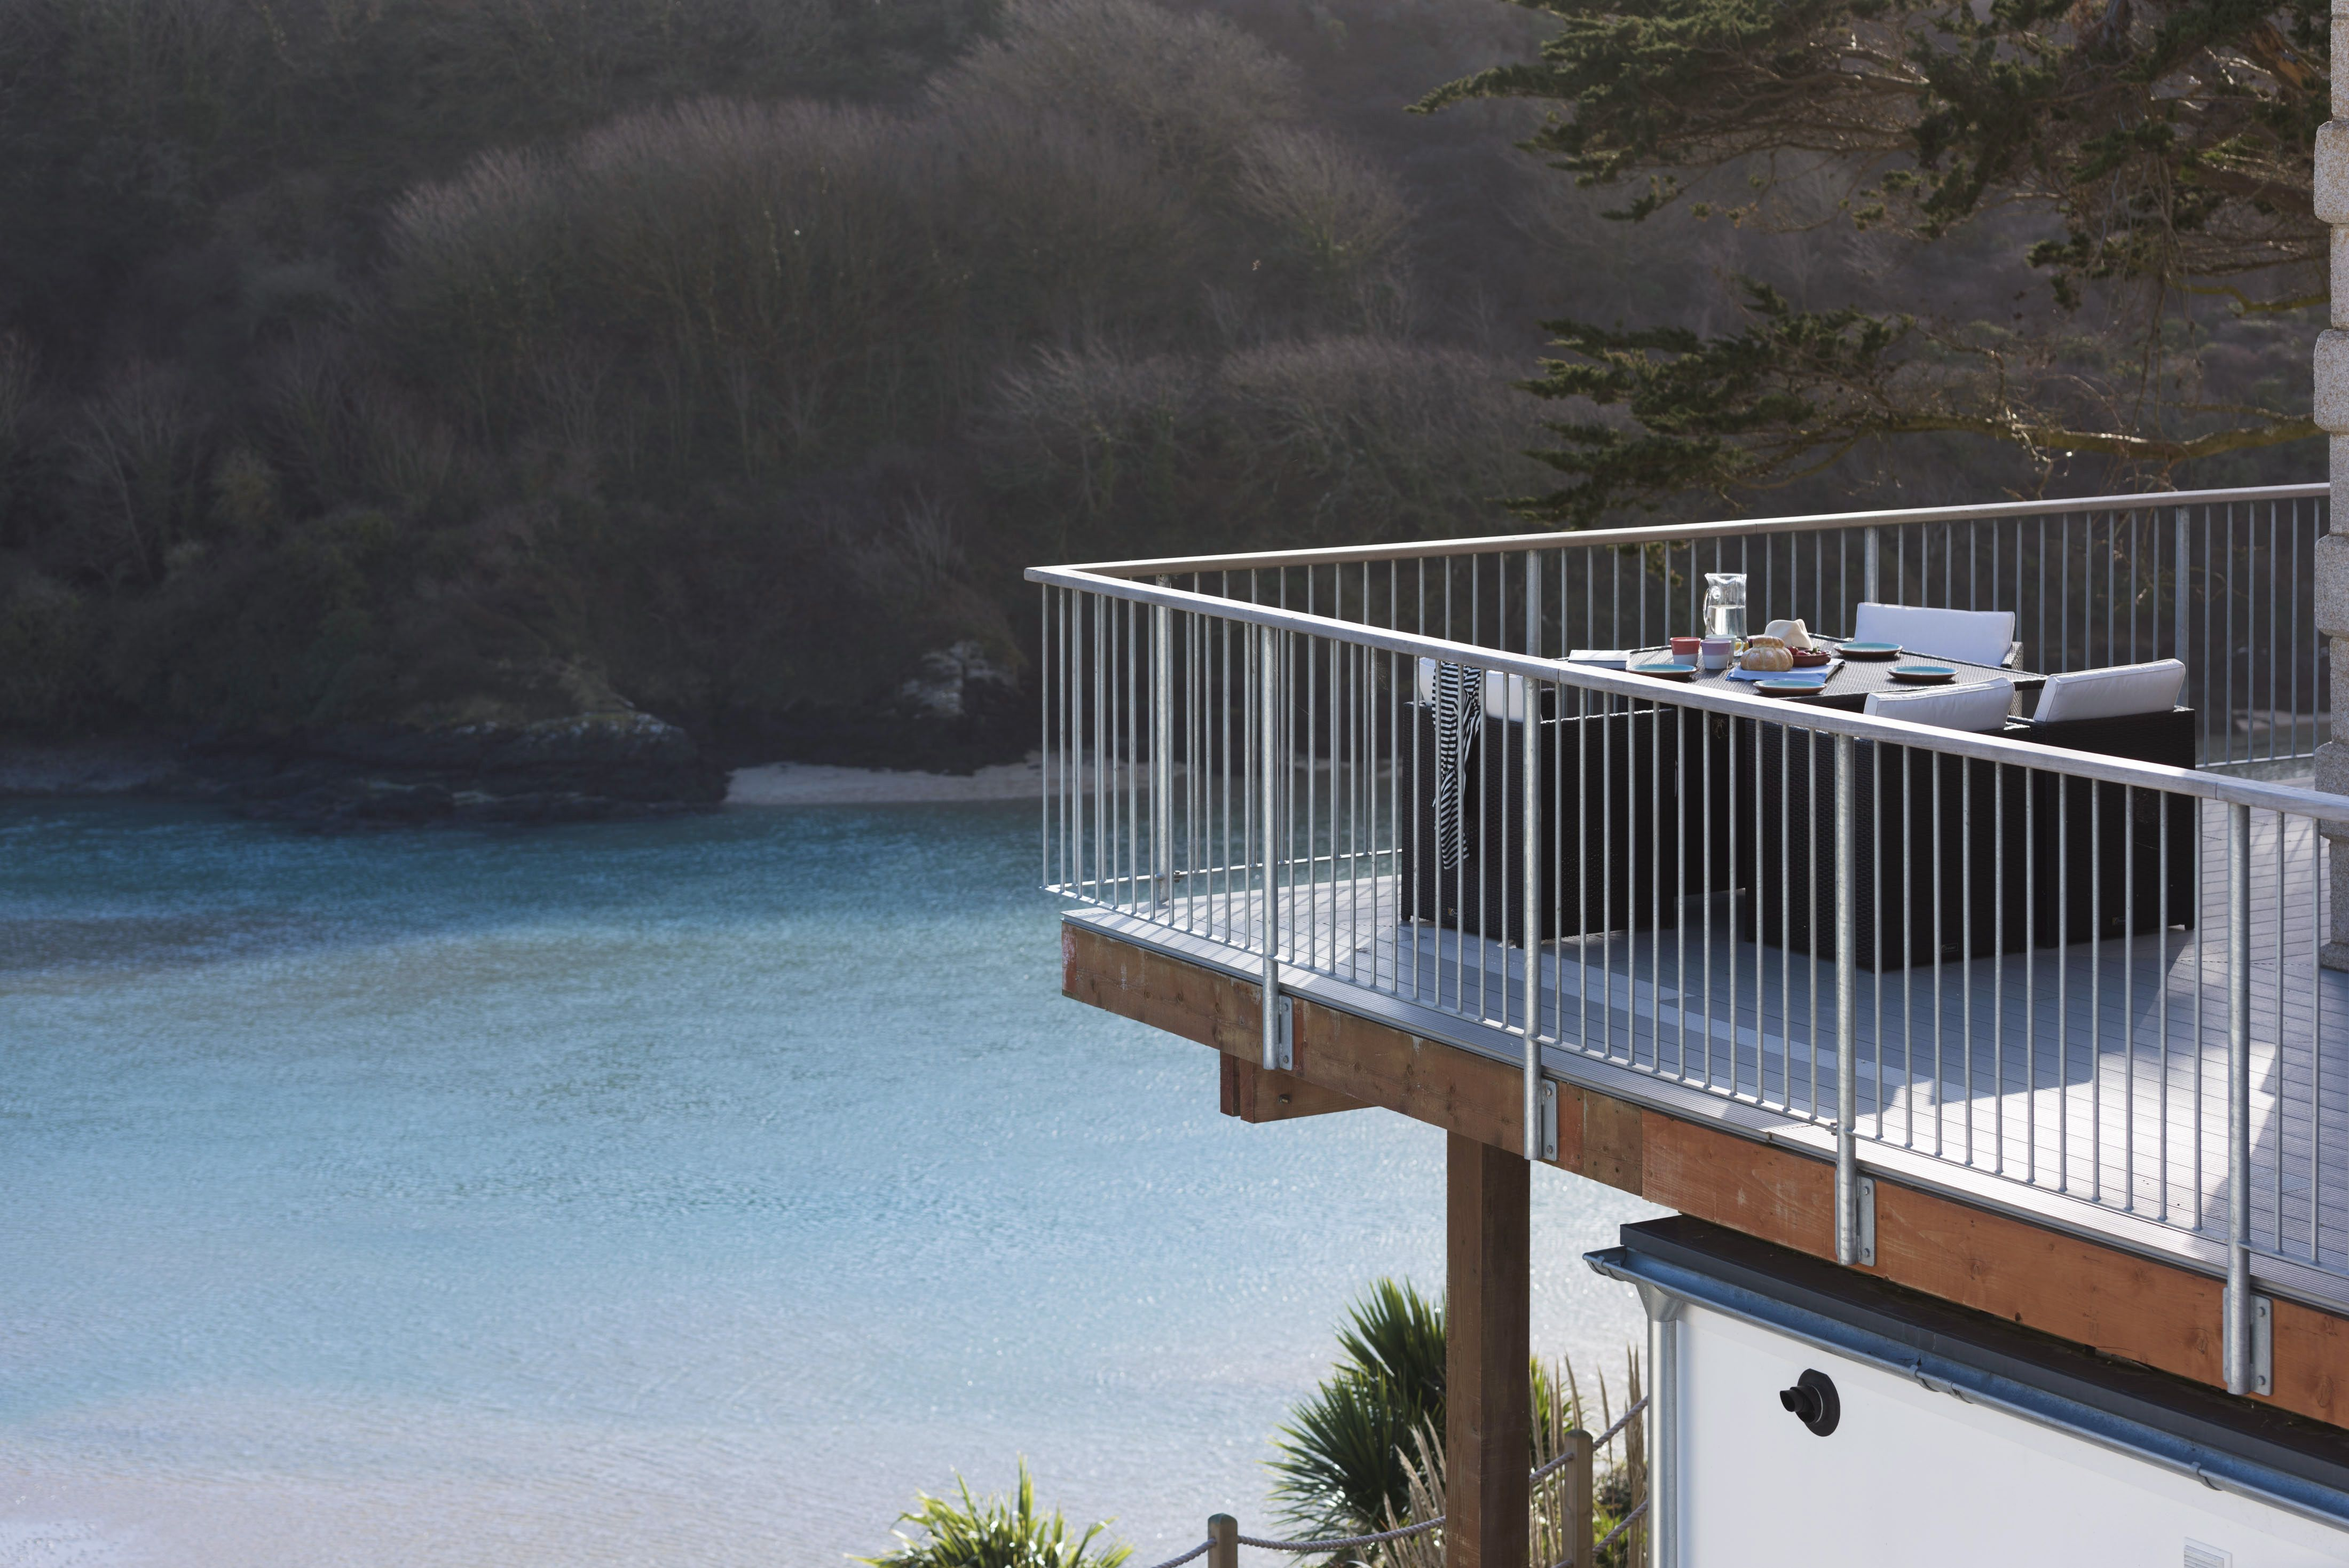 Waterside Newquay Elevated Above The Tidal Waters Of The River